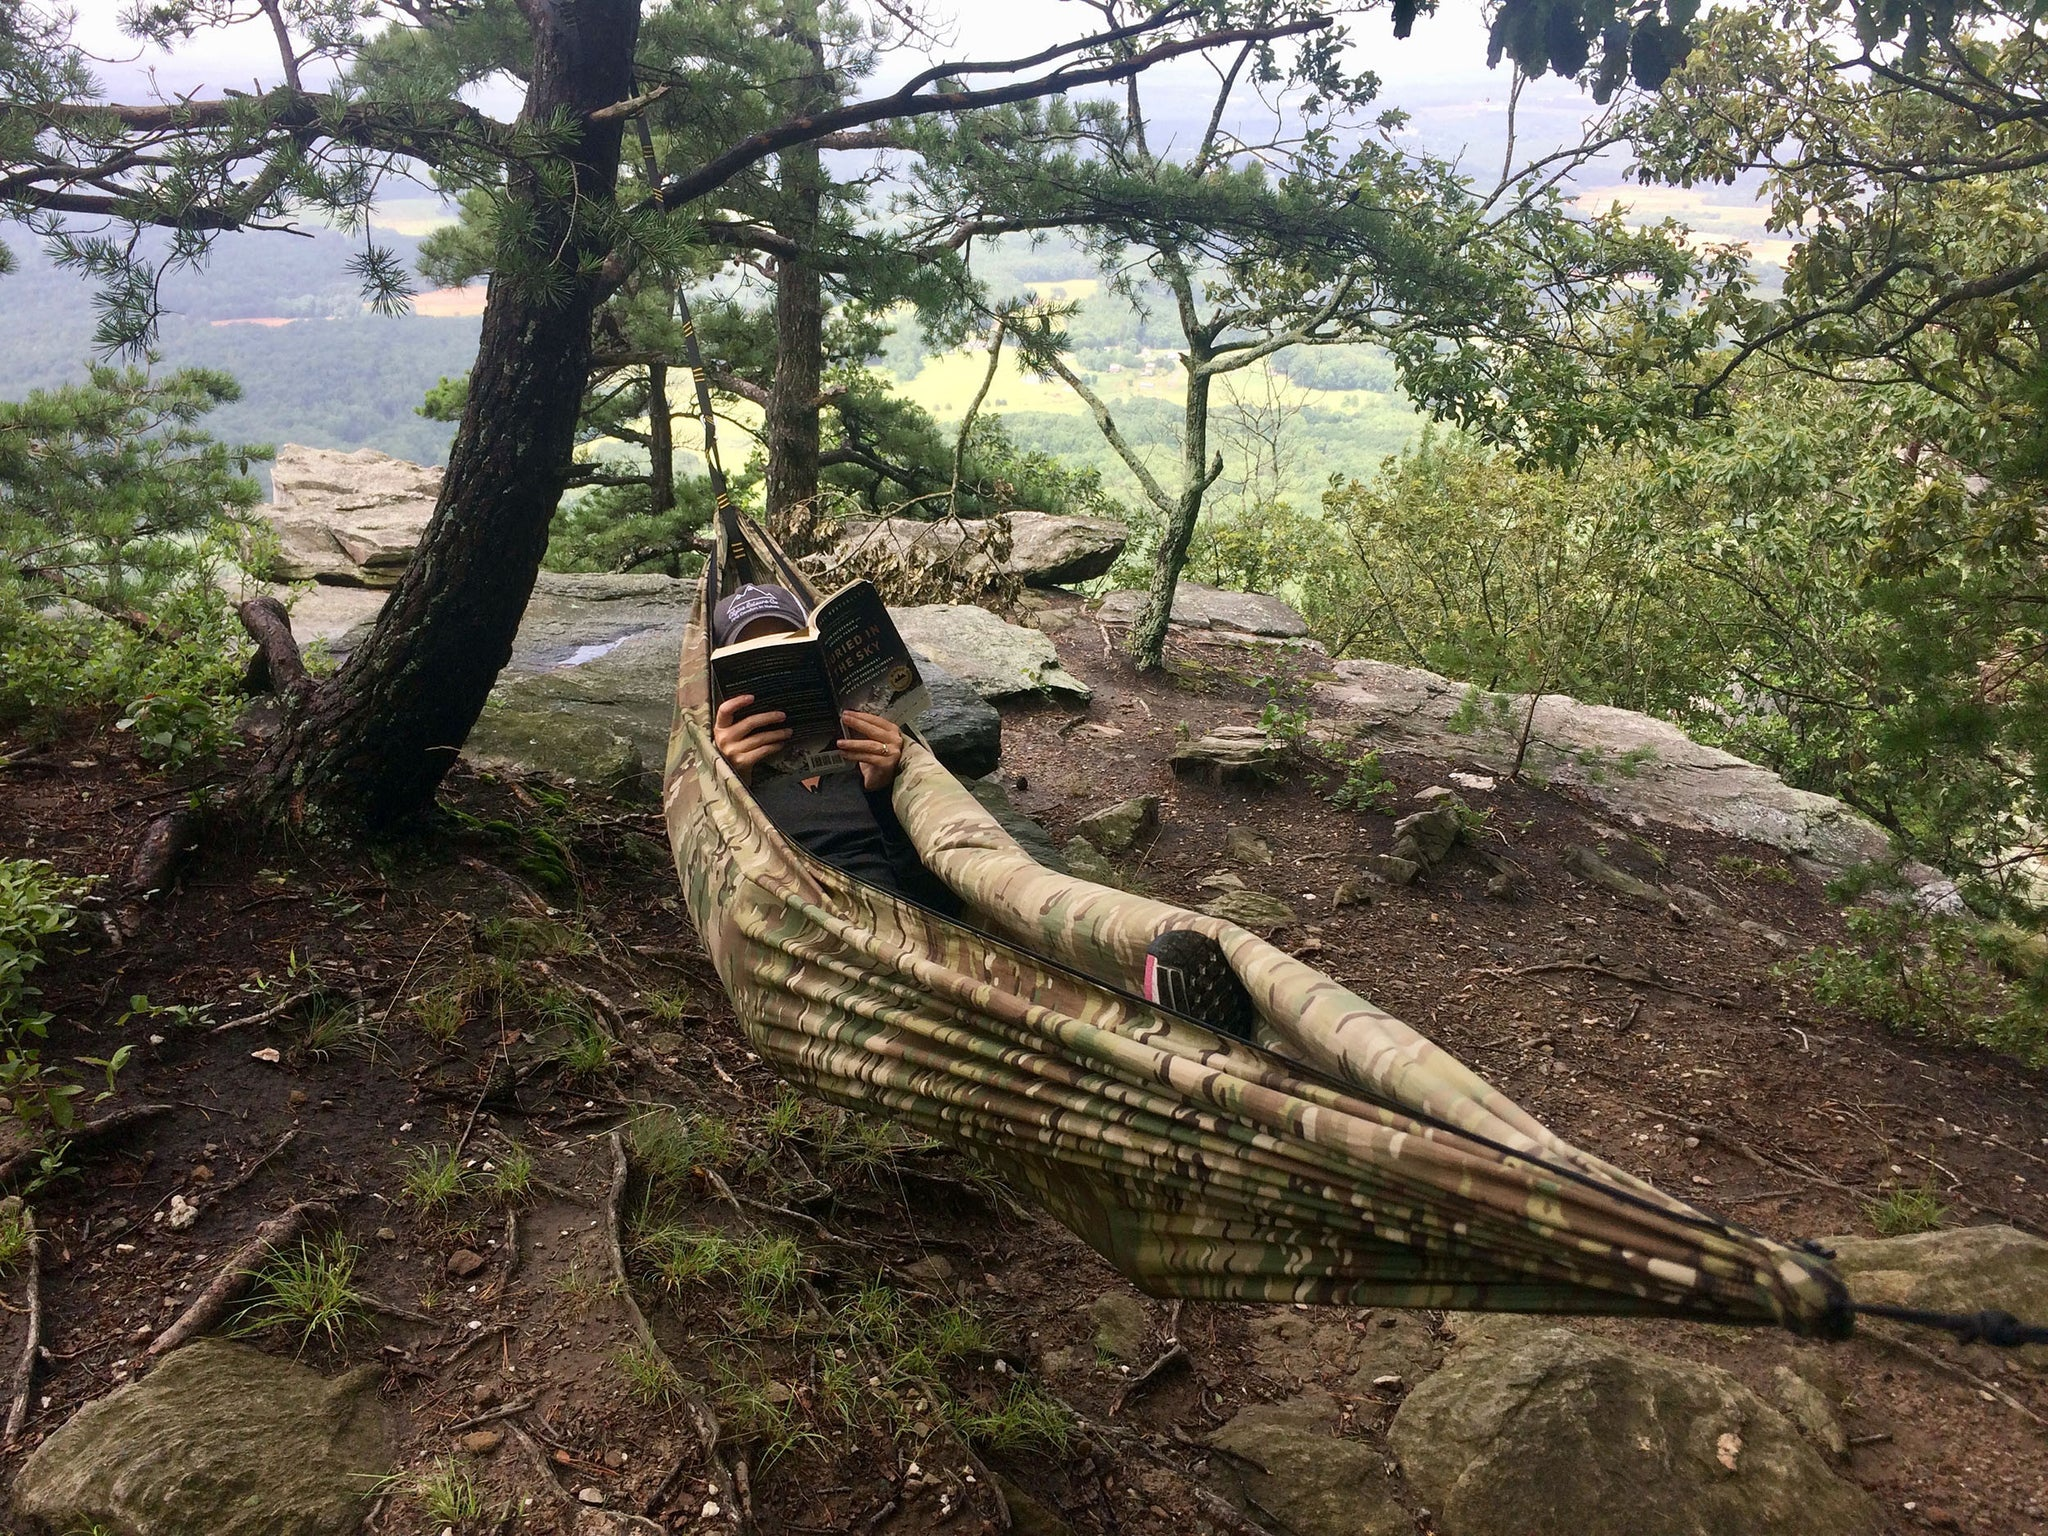 July Giveaway: Alpine Leisure Co. Hammock